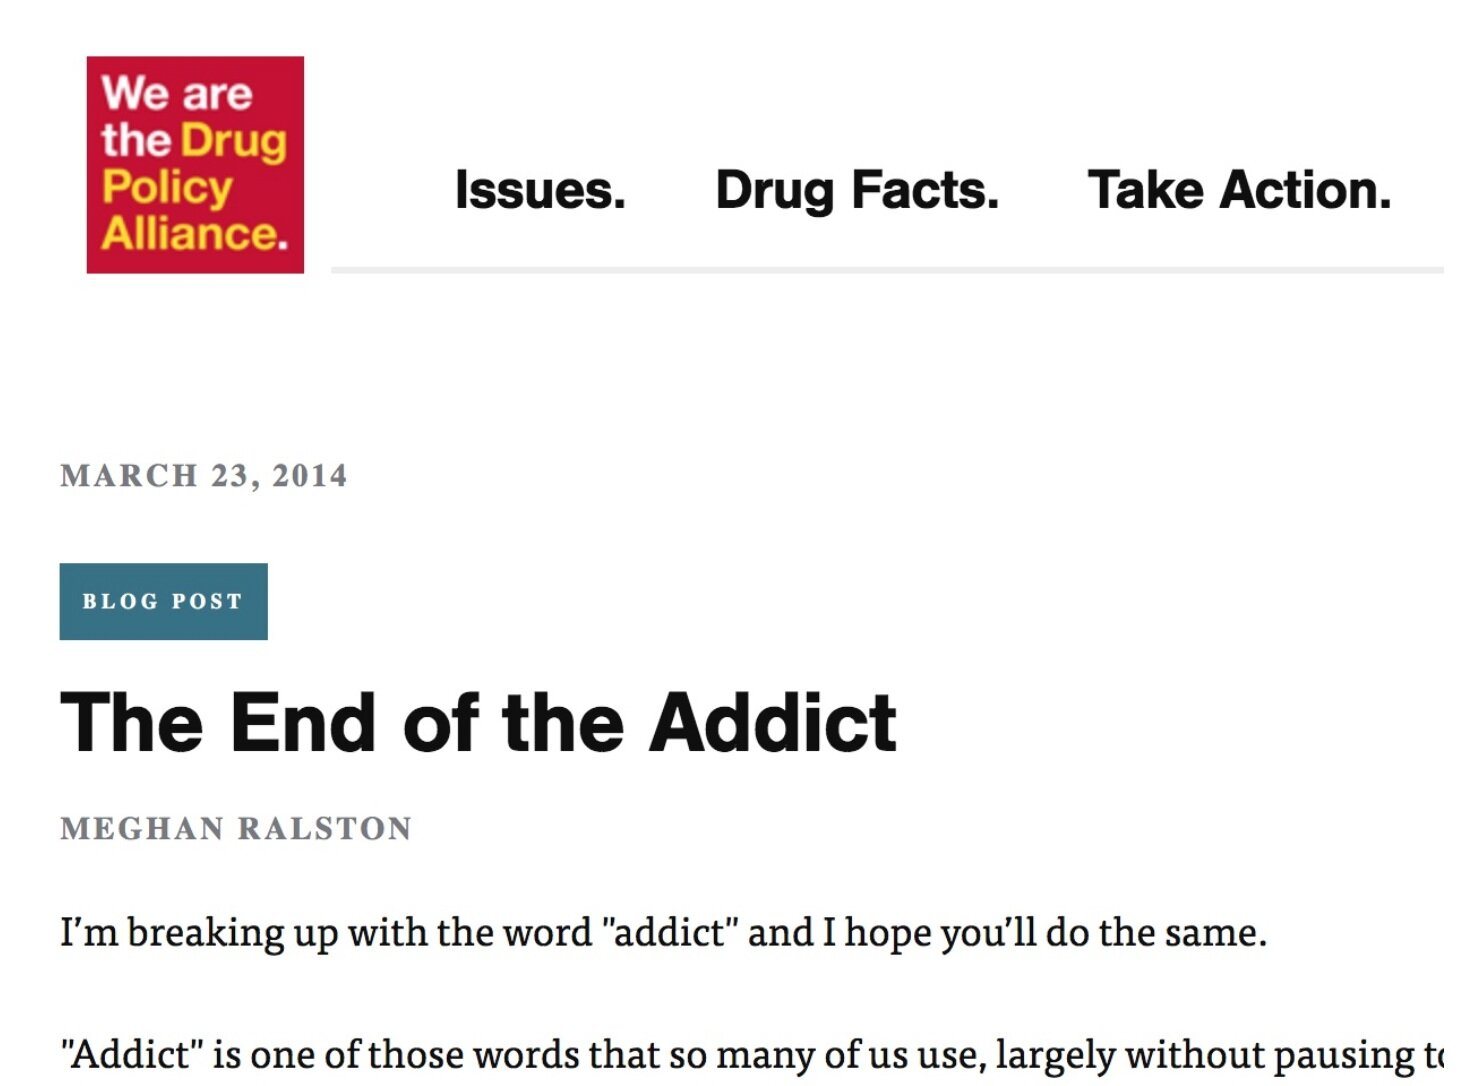 """The End of the Addict - This blog post by Meghan Ralston of Drug Policy Alliance reminds us that """"Addict is a word so singularly loaded with stigma and contempt that it's somewhat appalling that we continue to let it be used so easily and indiscriminately."""""""